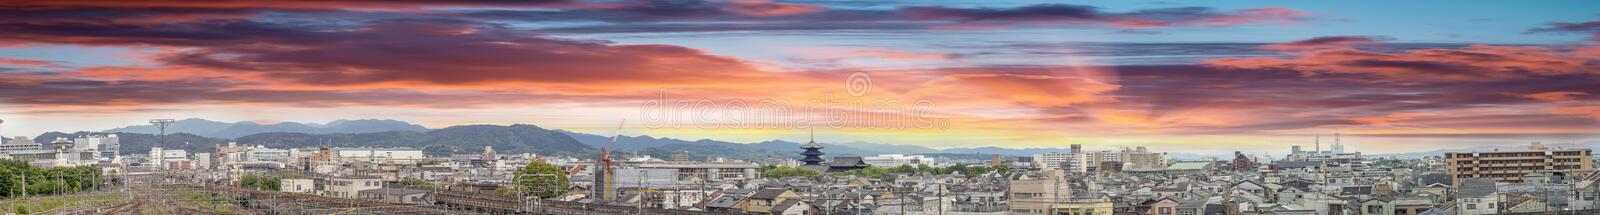 Sunset over Kyoto, Japan. Aerial panoramic city view royalty free stock photos